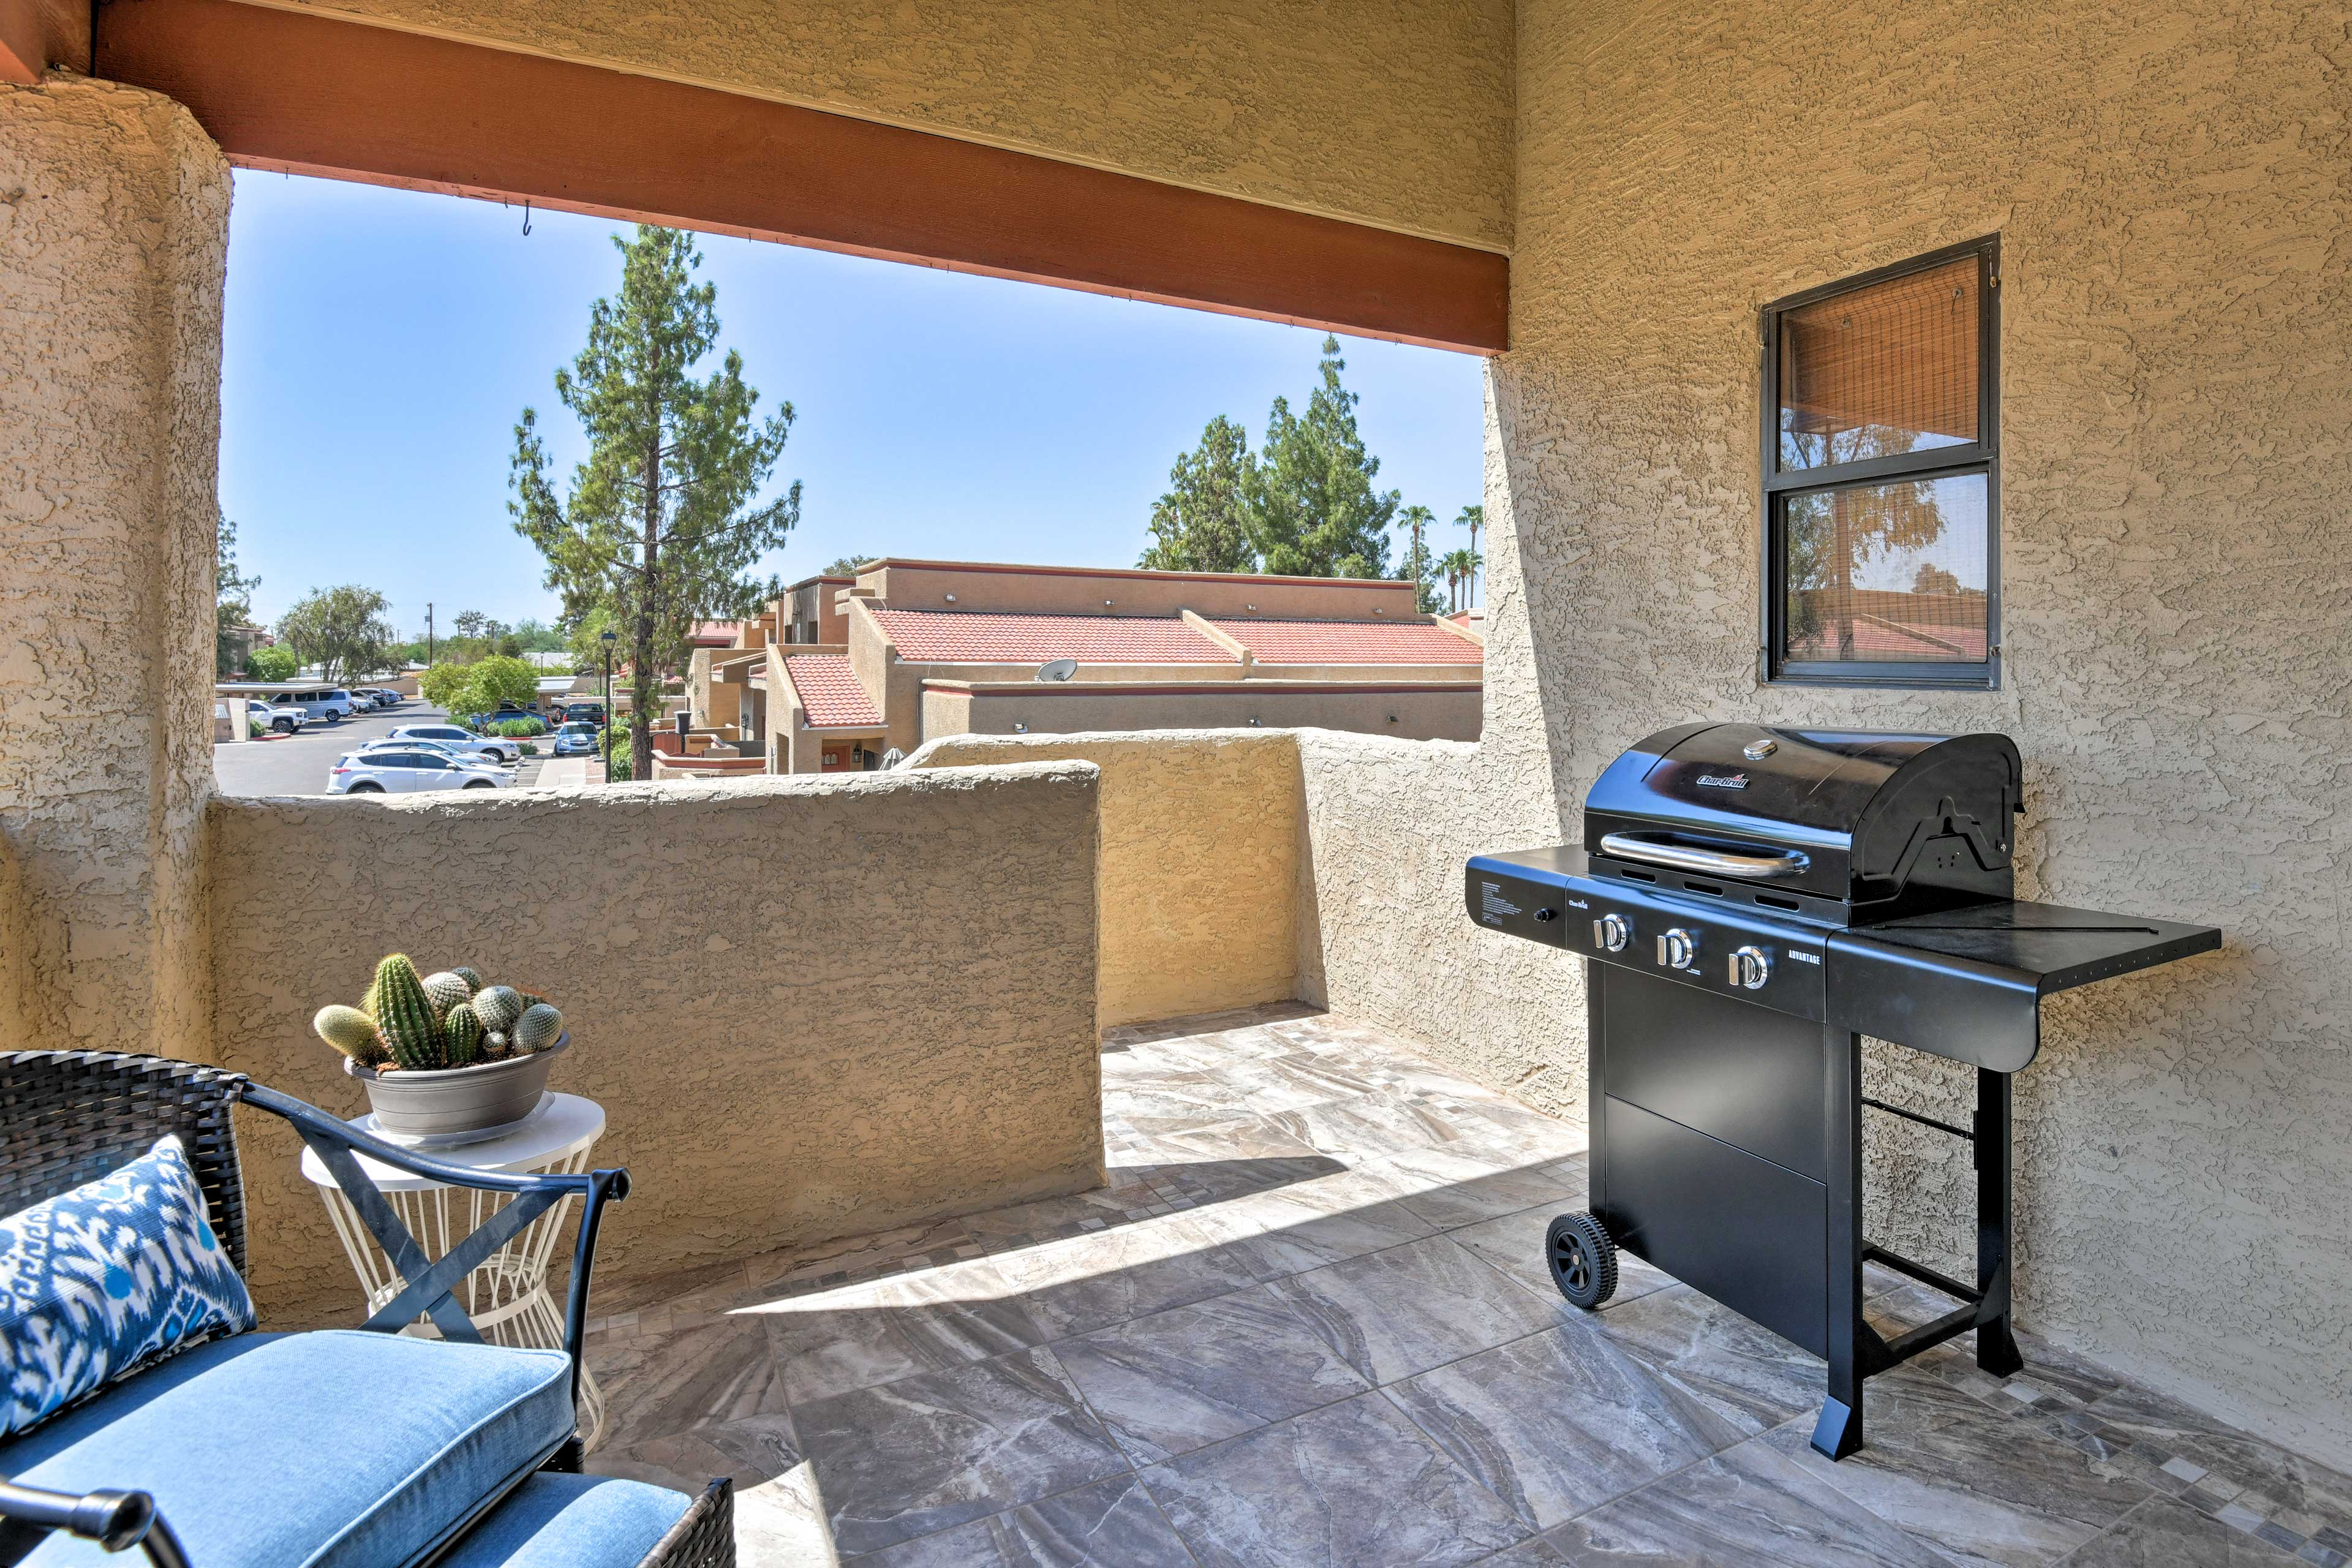 Throw some burgers on the gas grill for lunch on the covered patio.